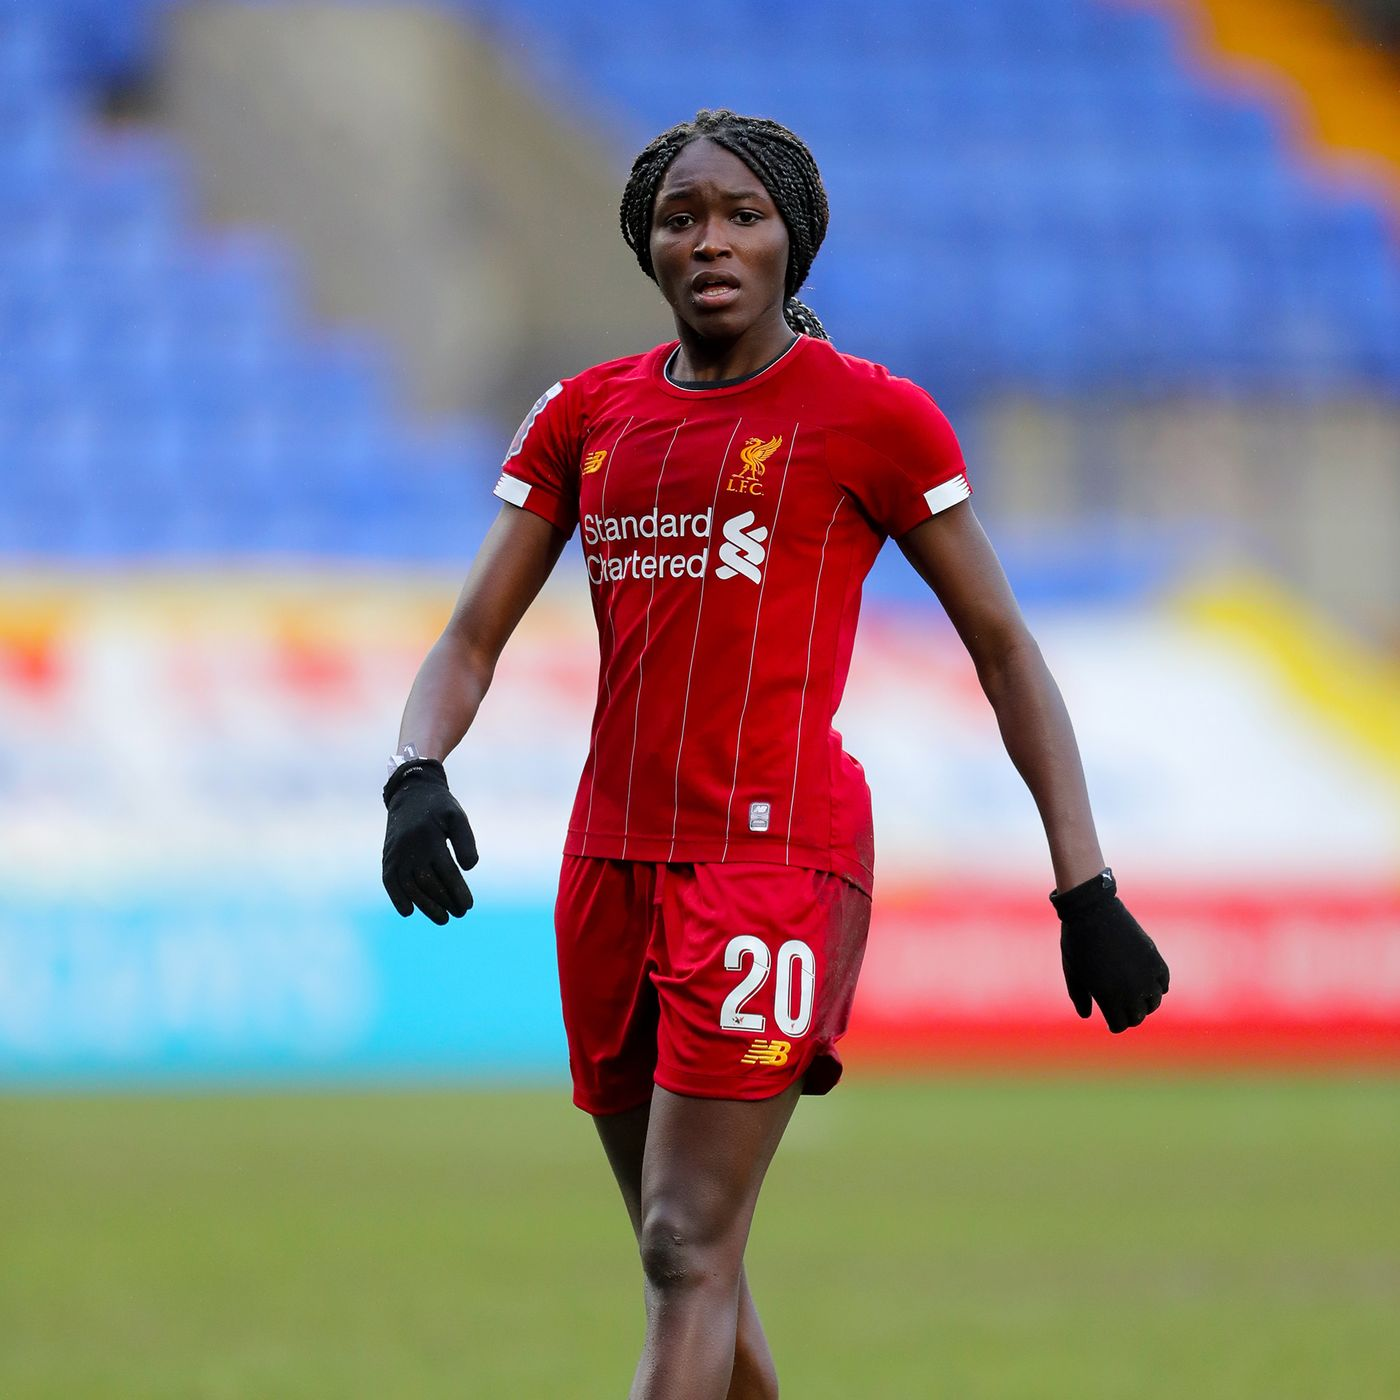 The Women's Football Show: Liverpool's Rinsola Babajide speaks out on online abuse as sport unites to boycott social media